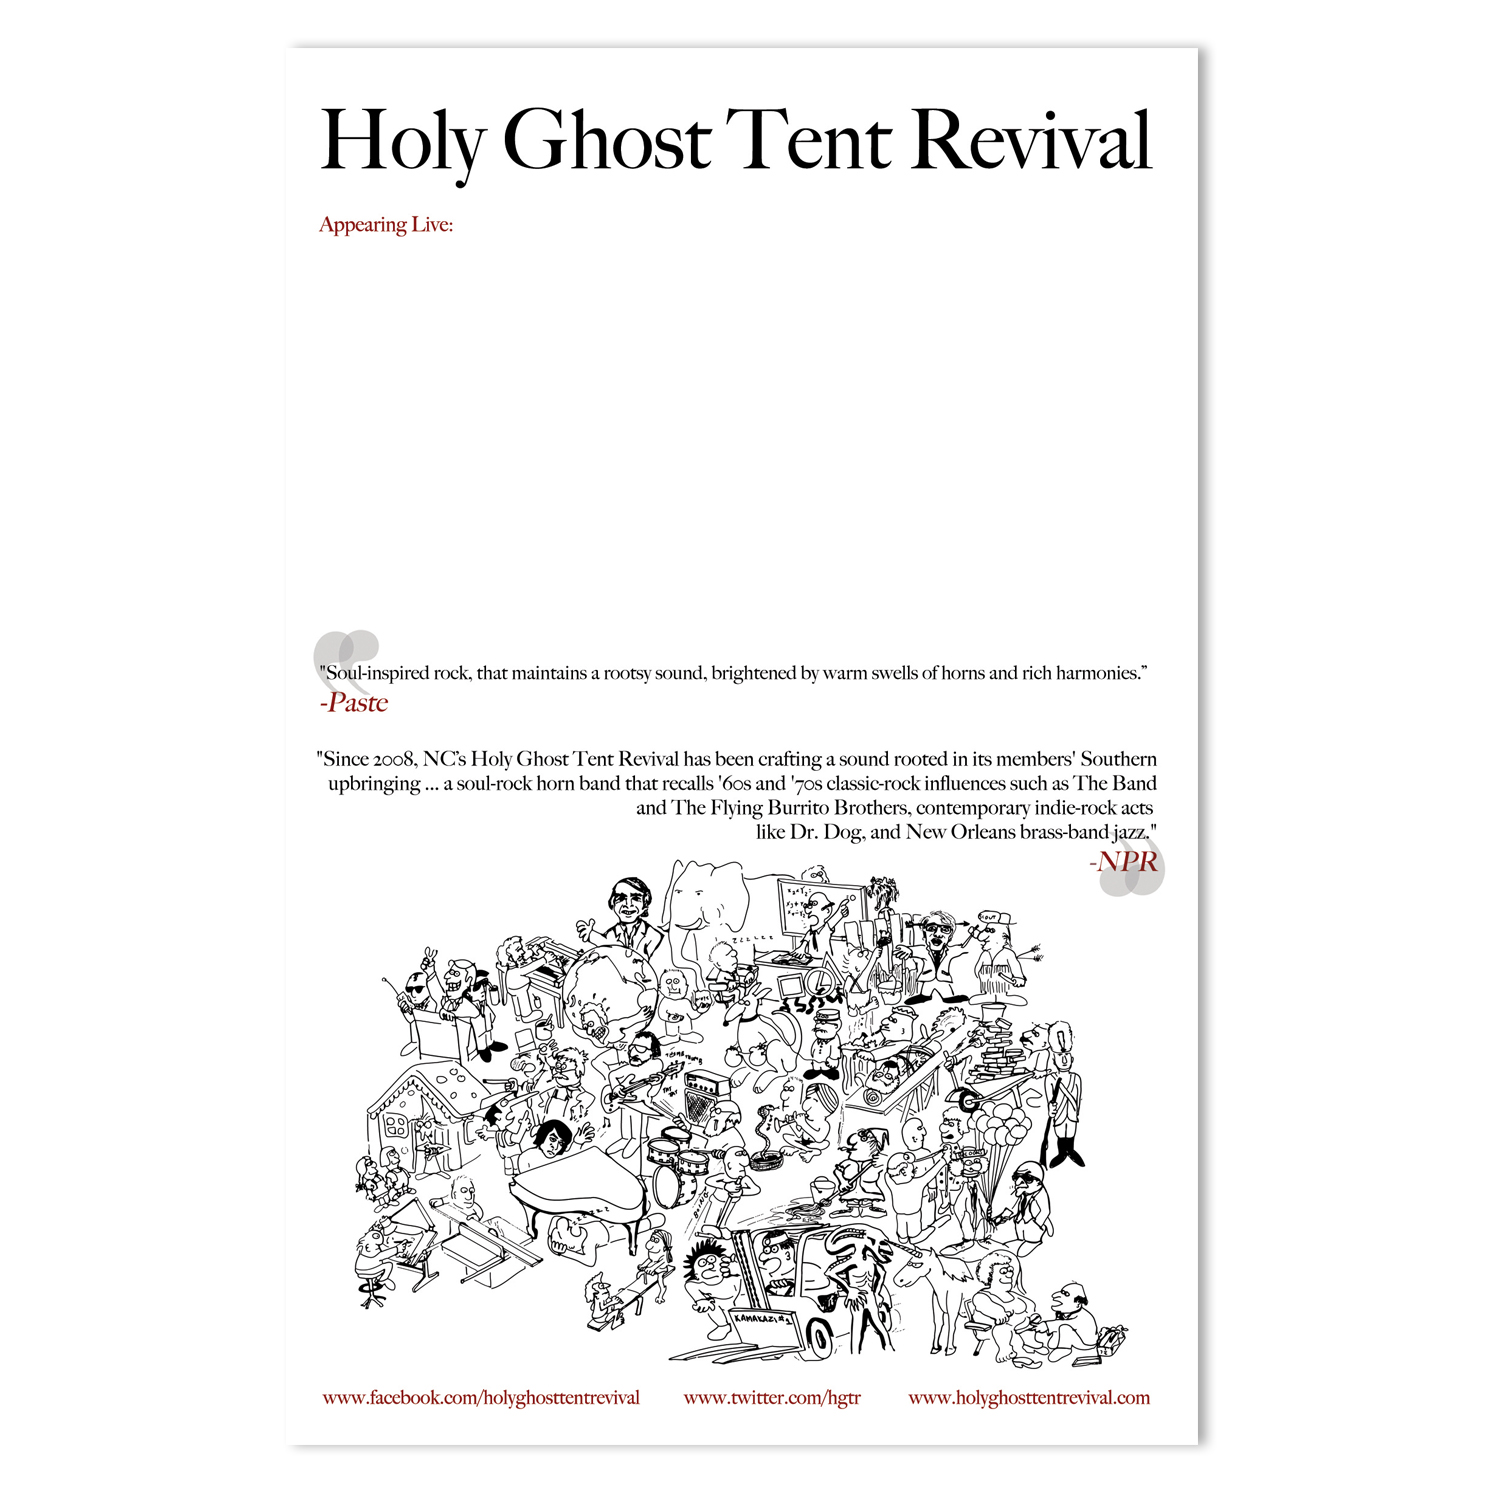 Holy Ghost Tent Revival Tour Poster  |   Illustration by Steve Mirabelli